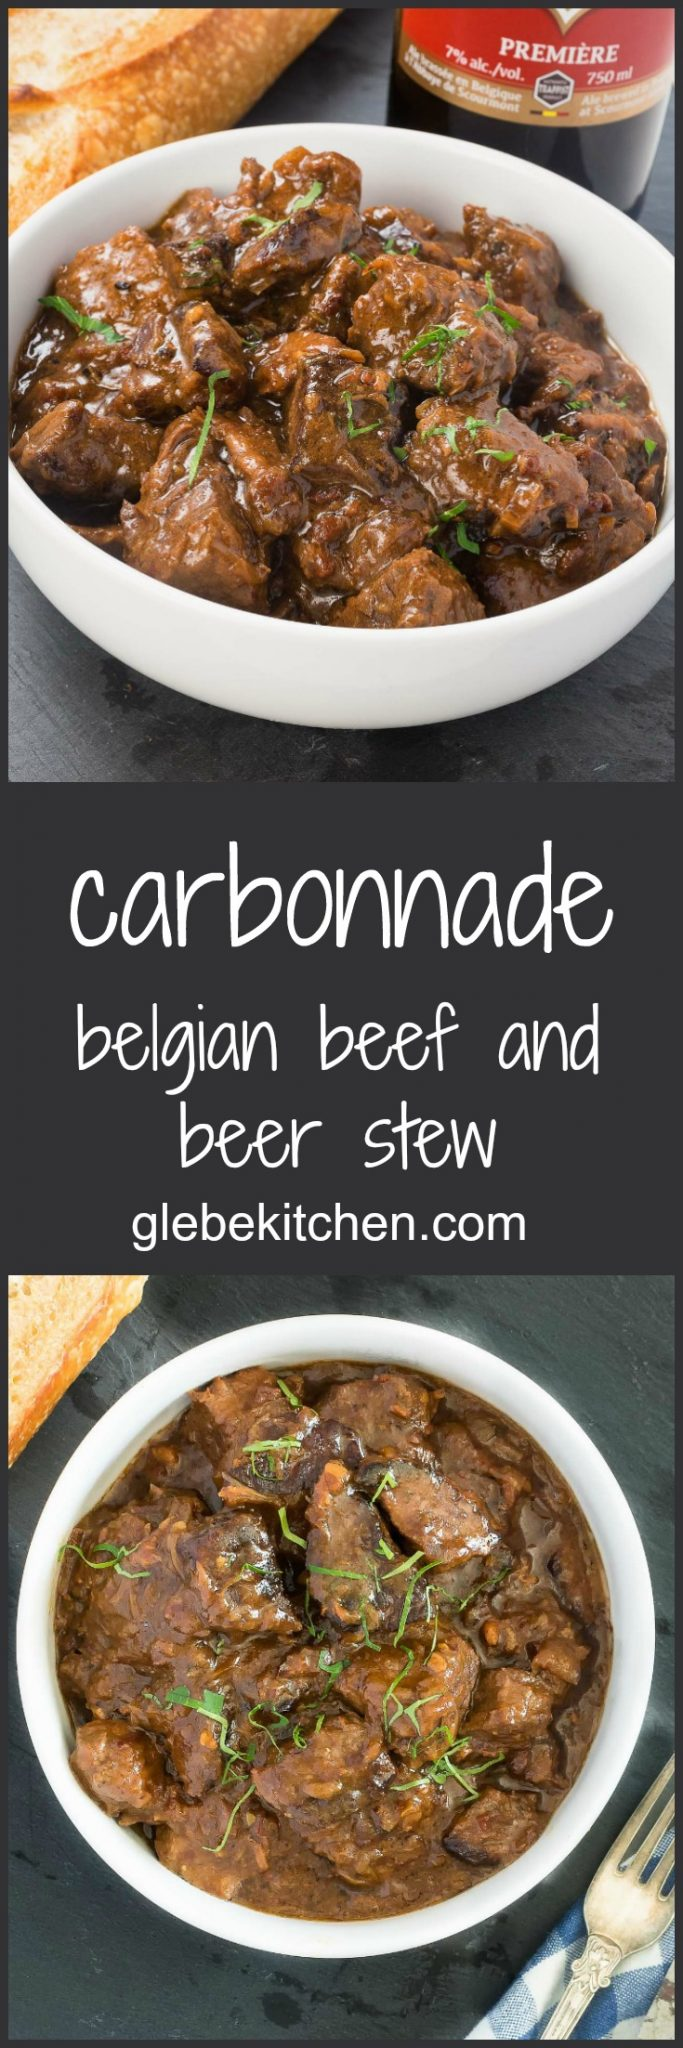 Beef and beer stew - carbonnade a la flamande is all about beer, beef and onions.